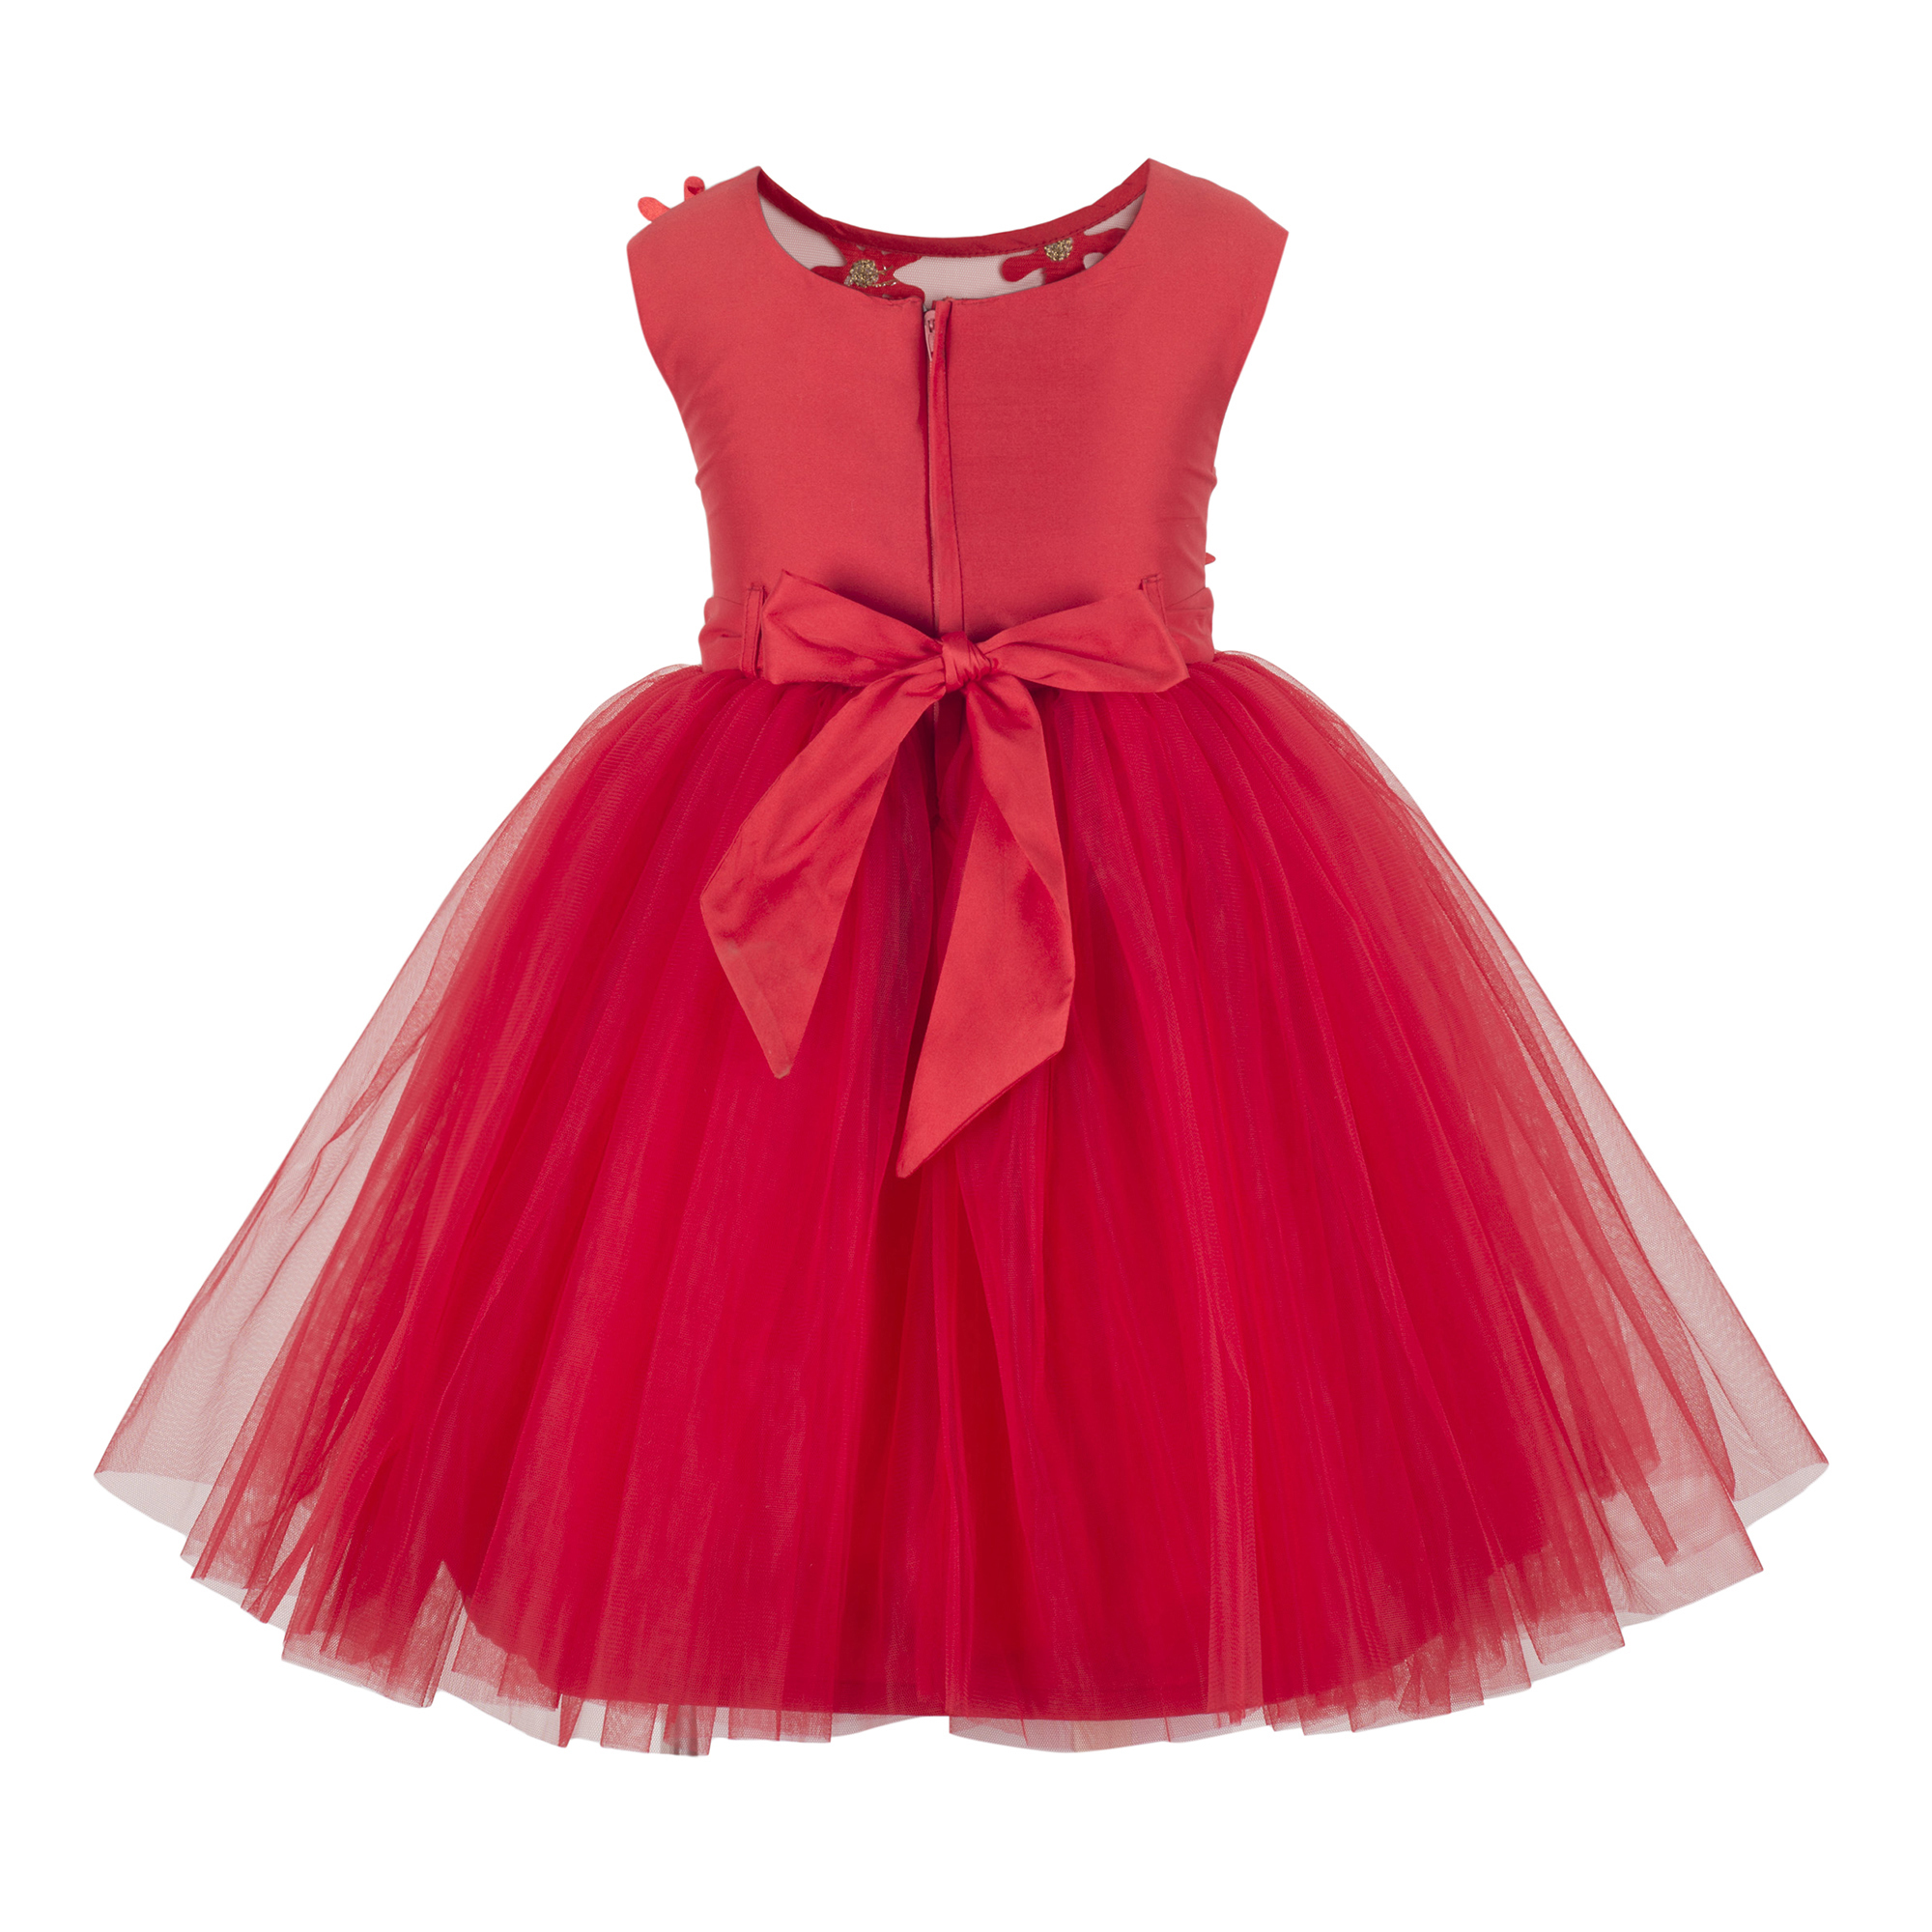 Applique Red Knee Length Party Frock